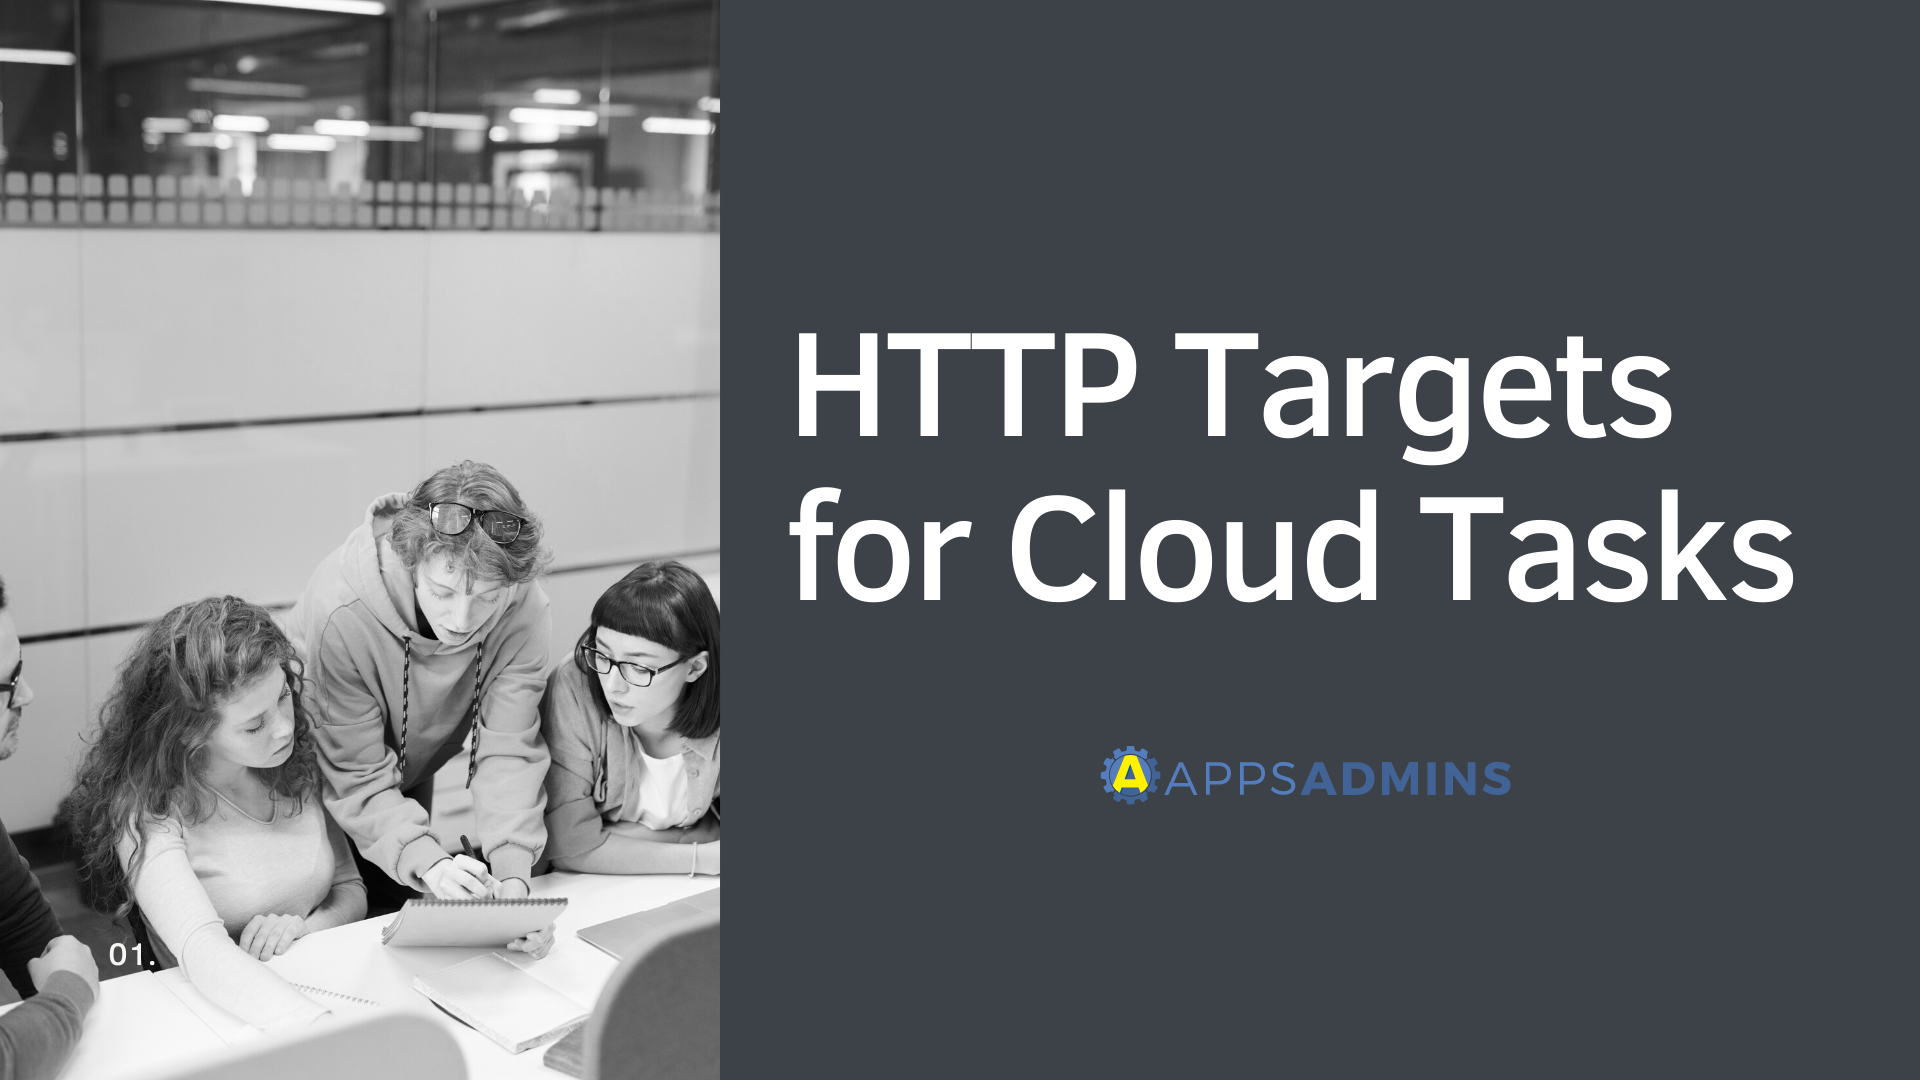 Introducing HTTP Targets for Cloud Tasks